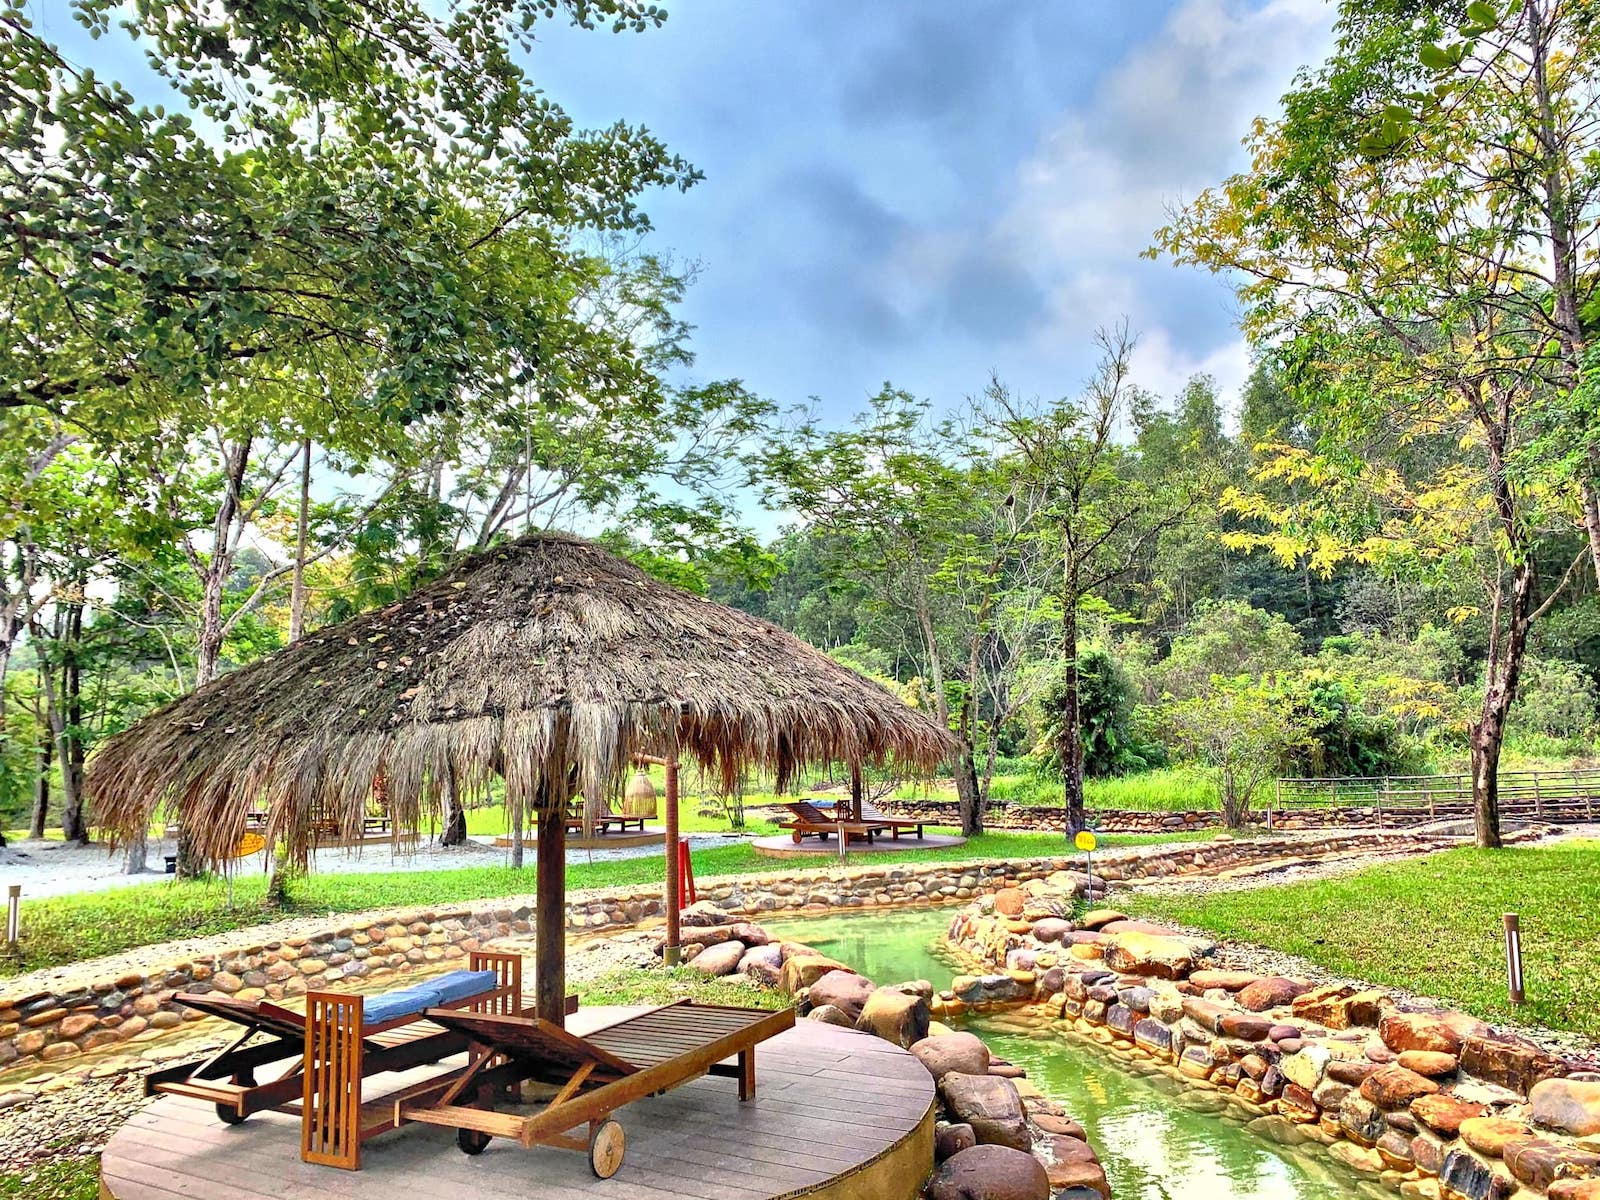 Image of the hot springs stream and lounge area at Alba Wellness Valley in Hue, Vietnam